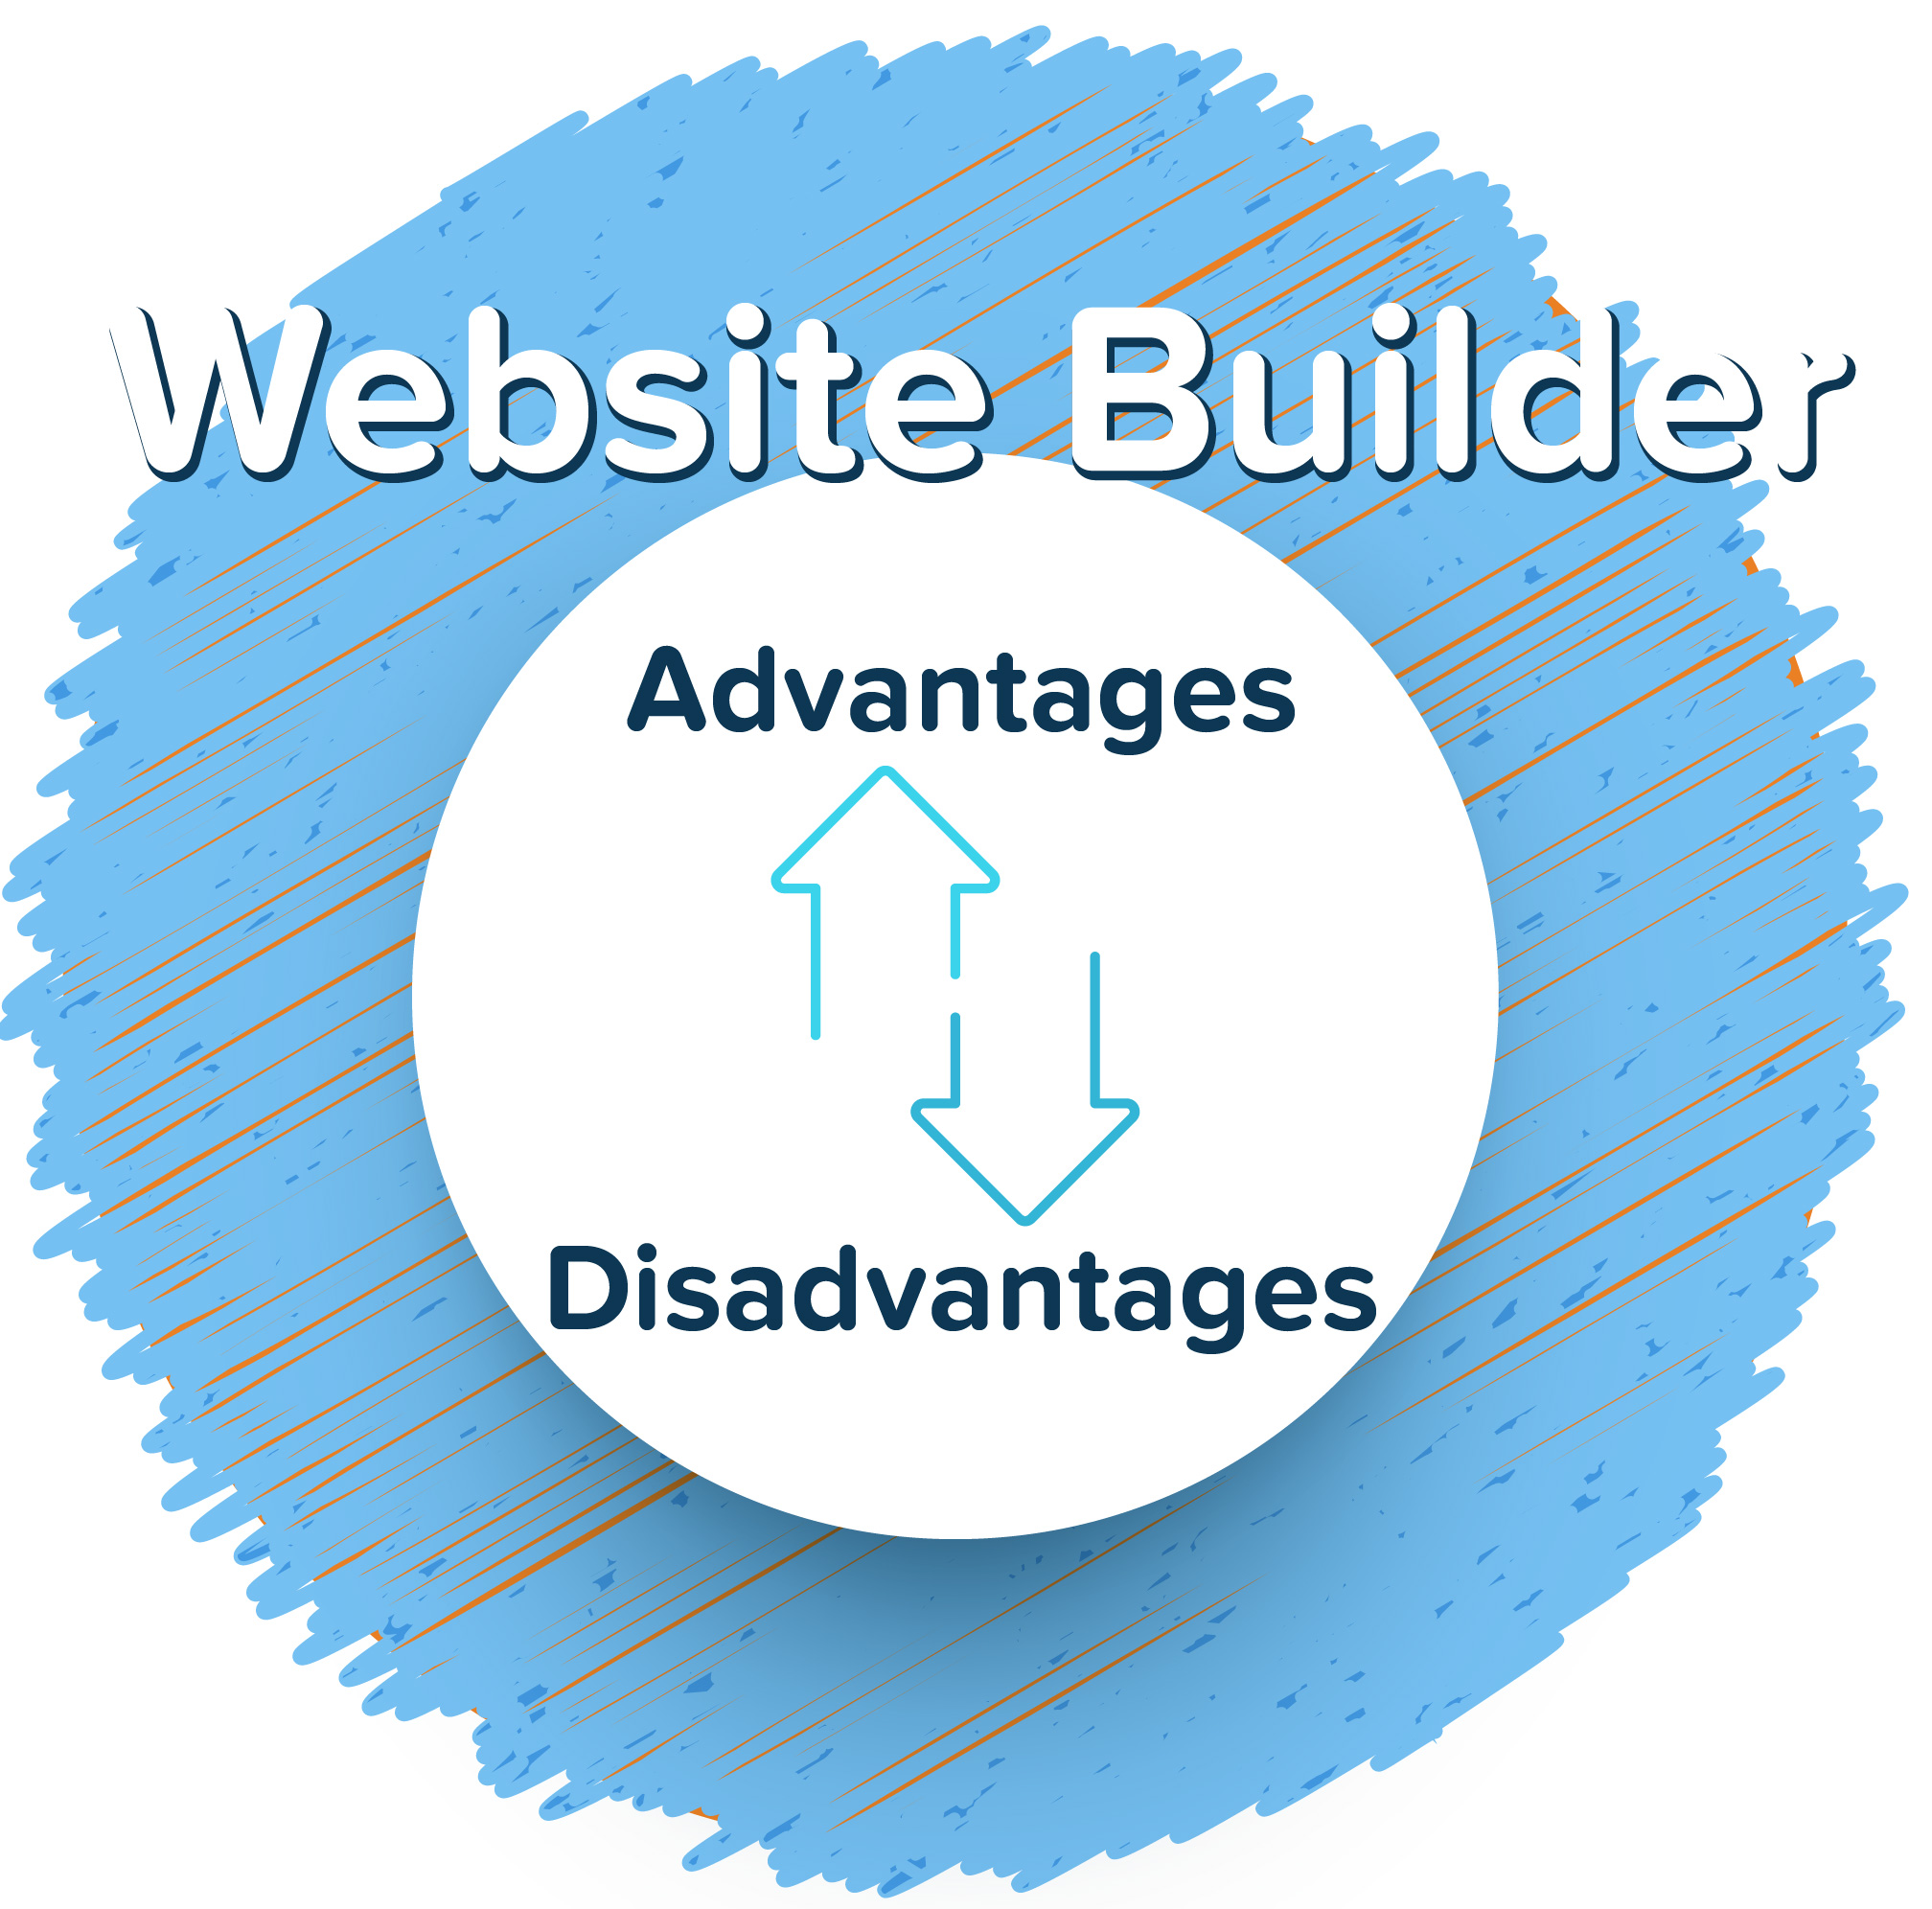 10 Best Website Builders for Small Business (Inside Look & Reviews)